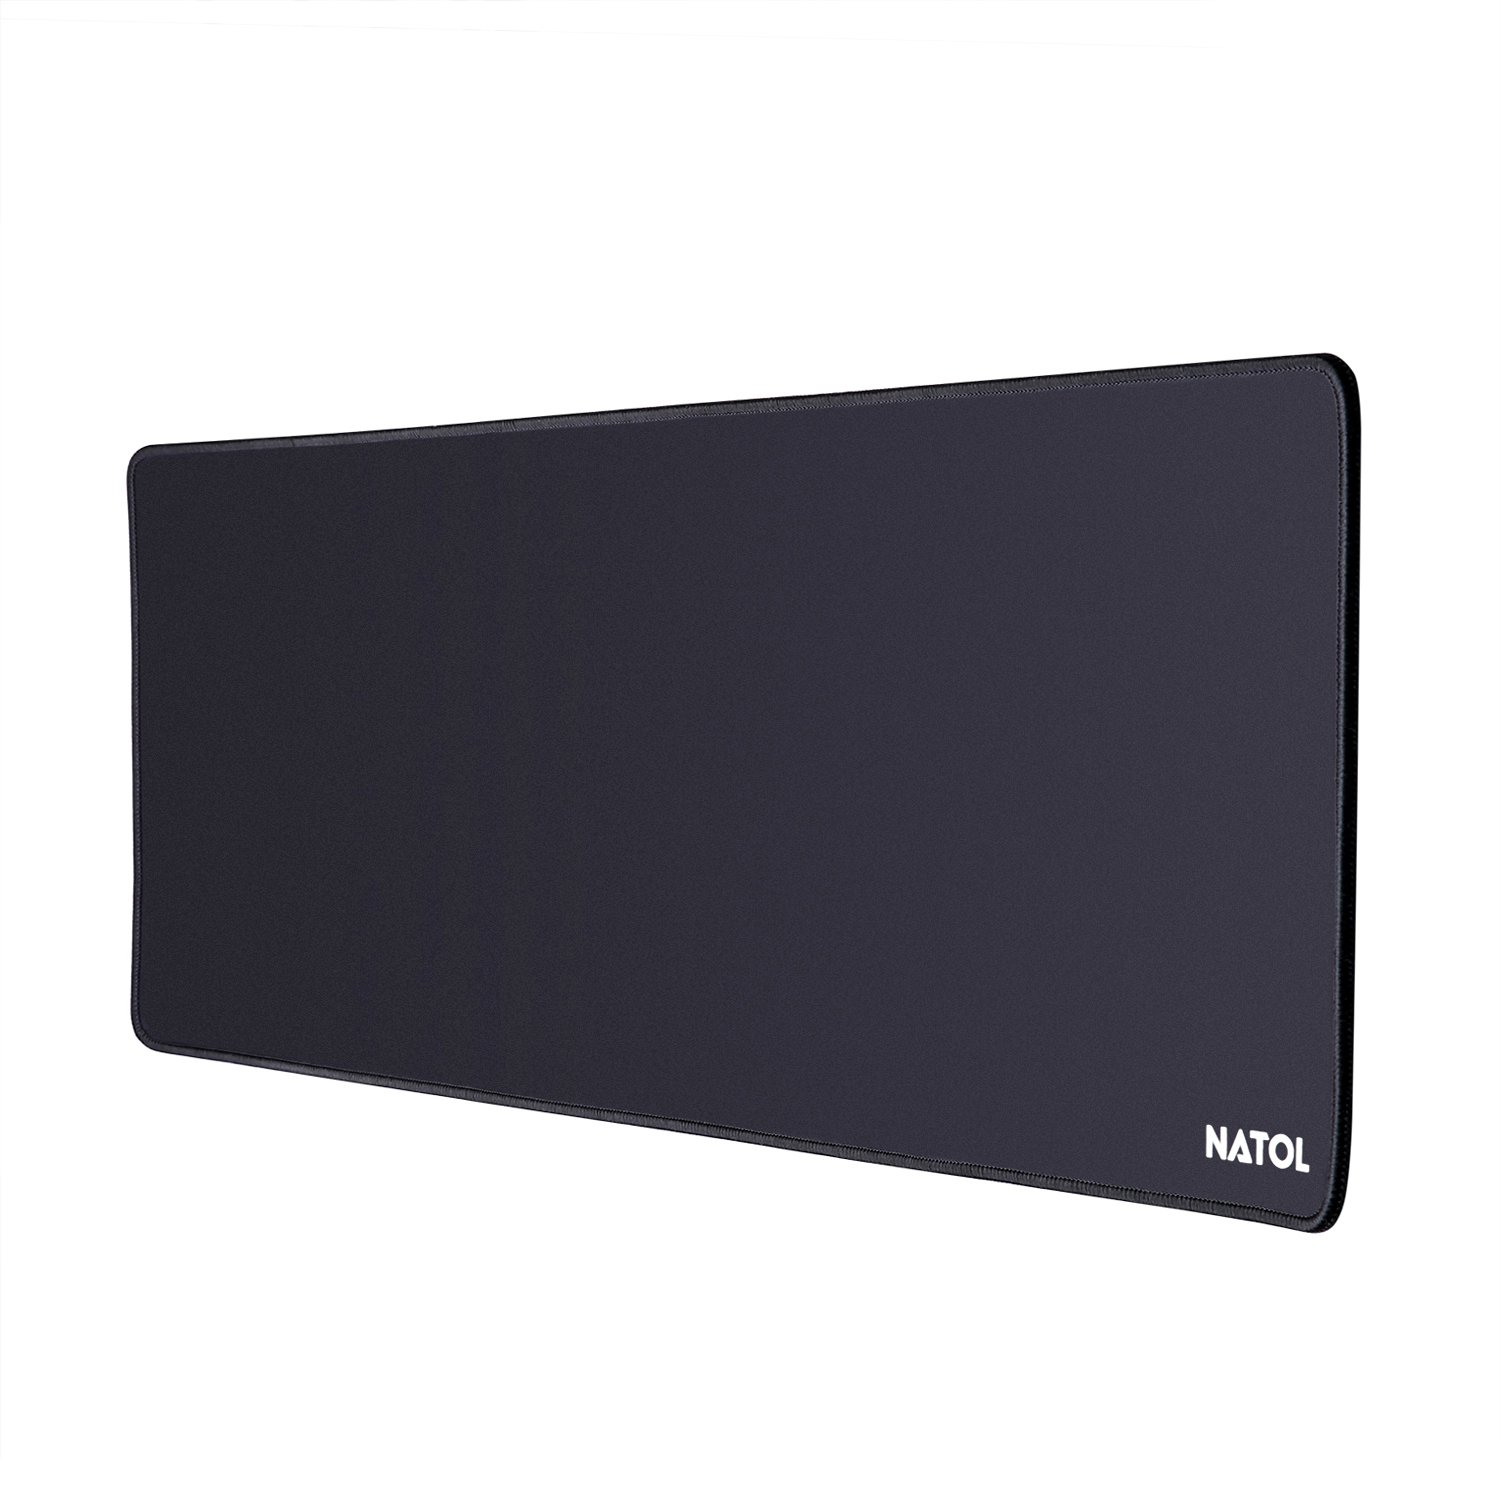 NATOL Gaming Mouse Pad, 800 x 300 mm Grande Tappetino Mouse Gaming, con Superficie Liscia, Antiscivolo, Resistente All\'acqua e con Base in Gomma